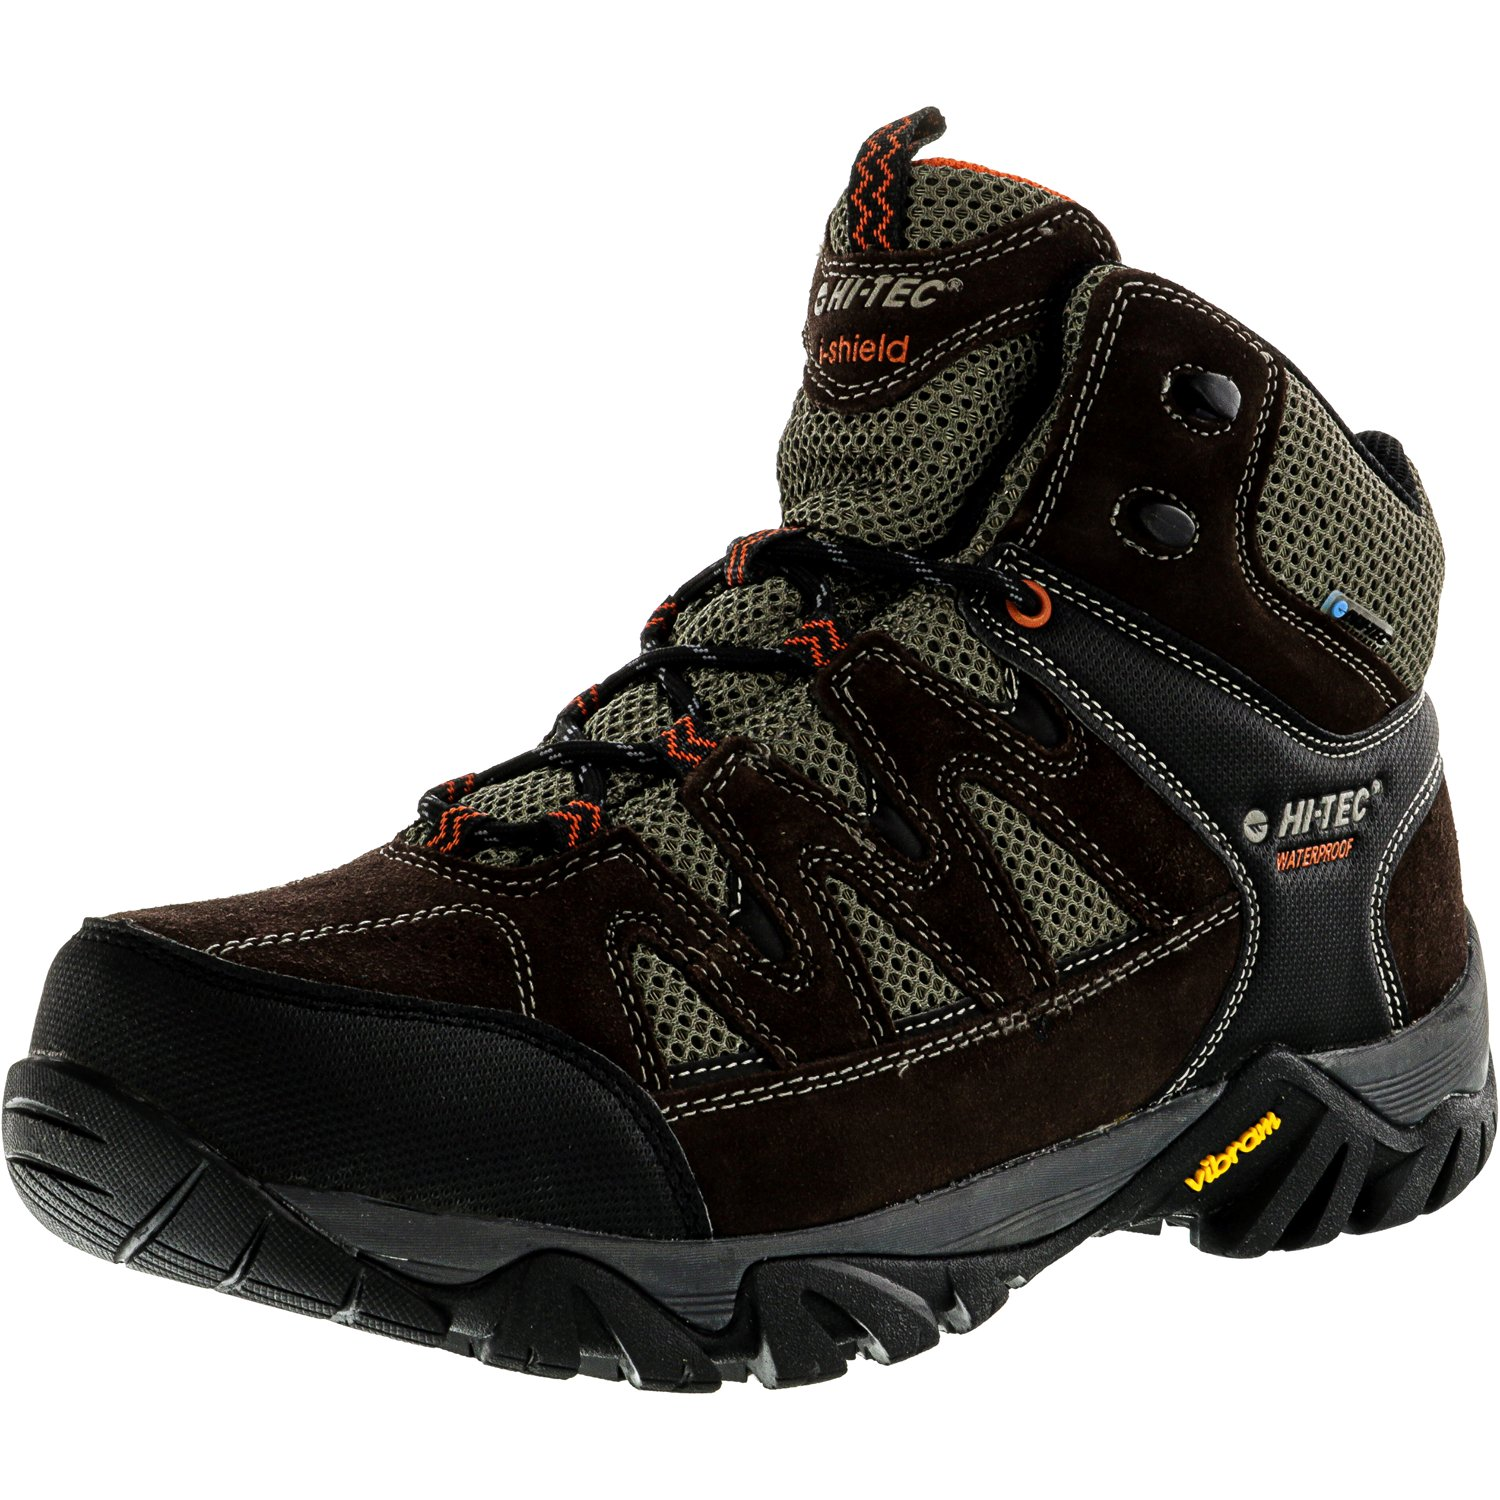 Hi-Tec Mens 54151 Sonorous Mid I Waterproof Hiking Boots Chocolate Red Rock by Hi-Tec